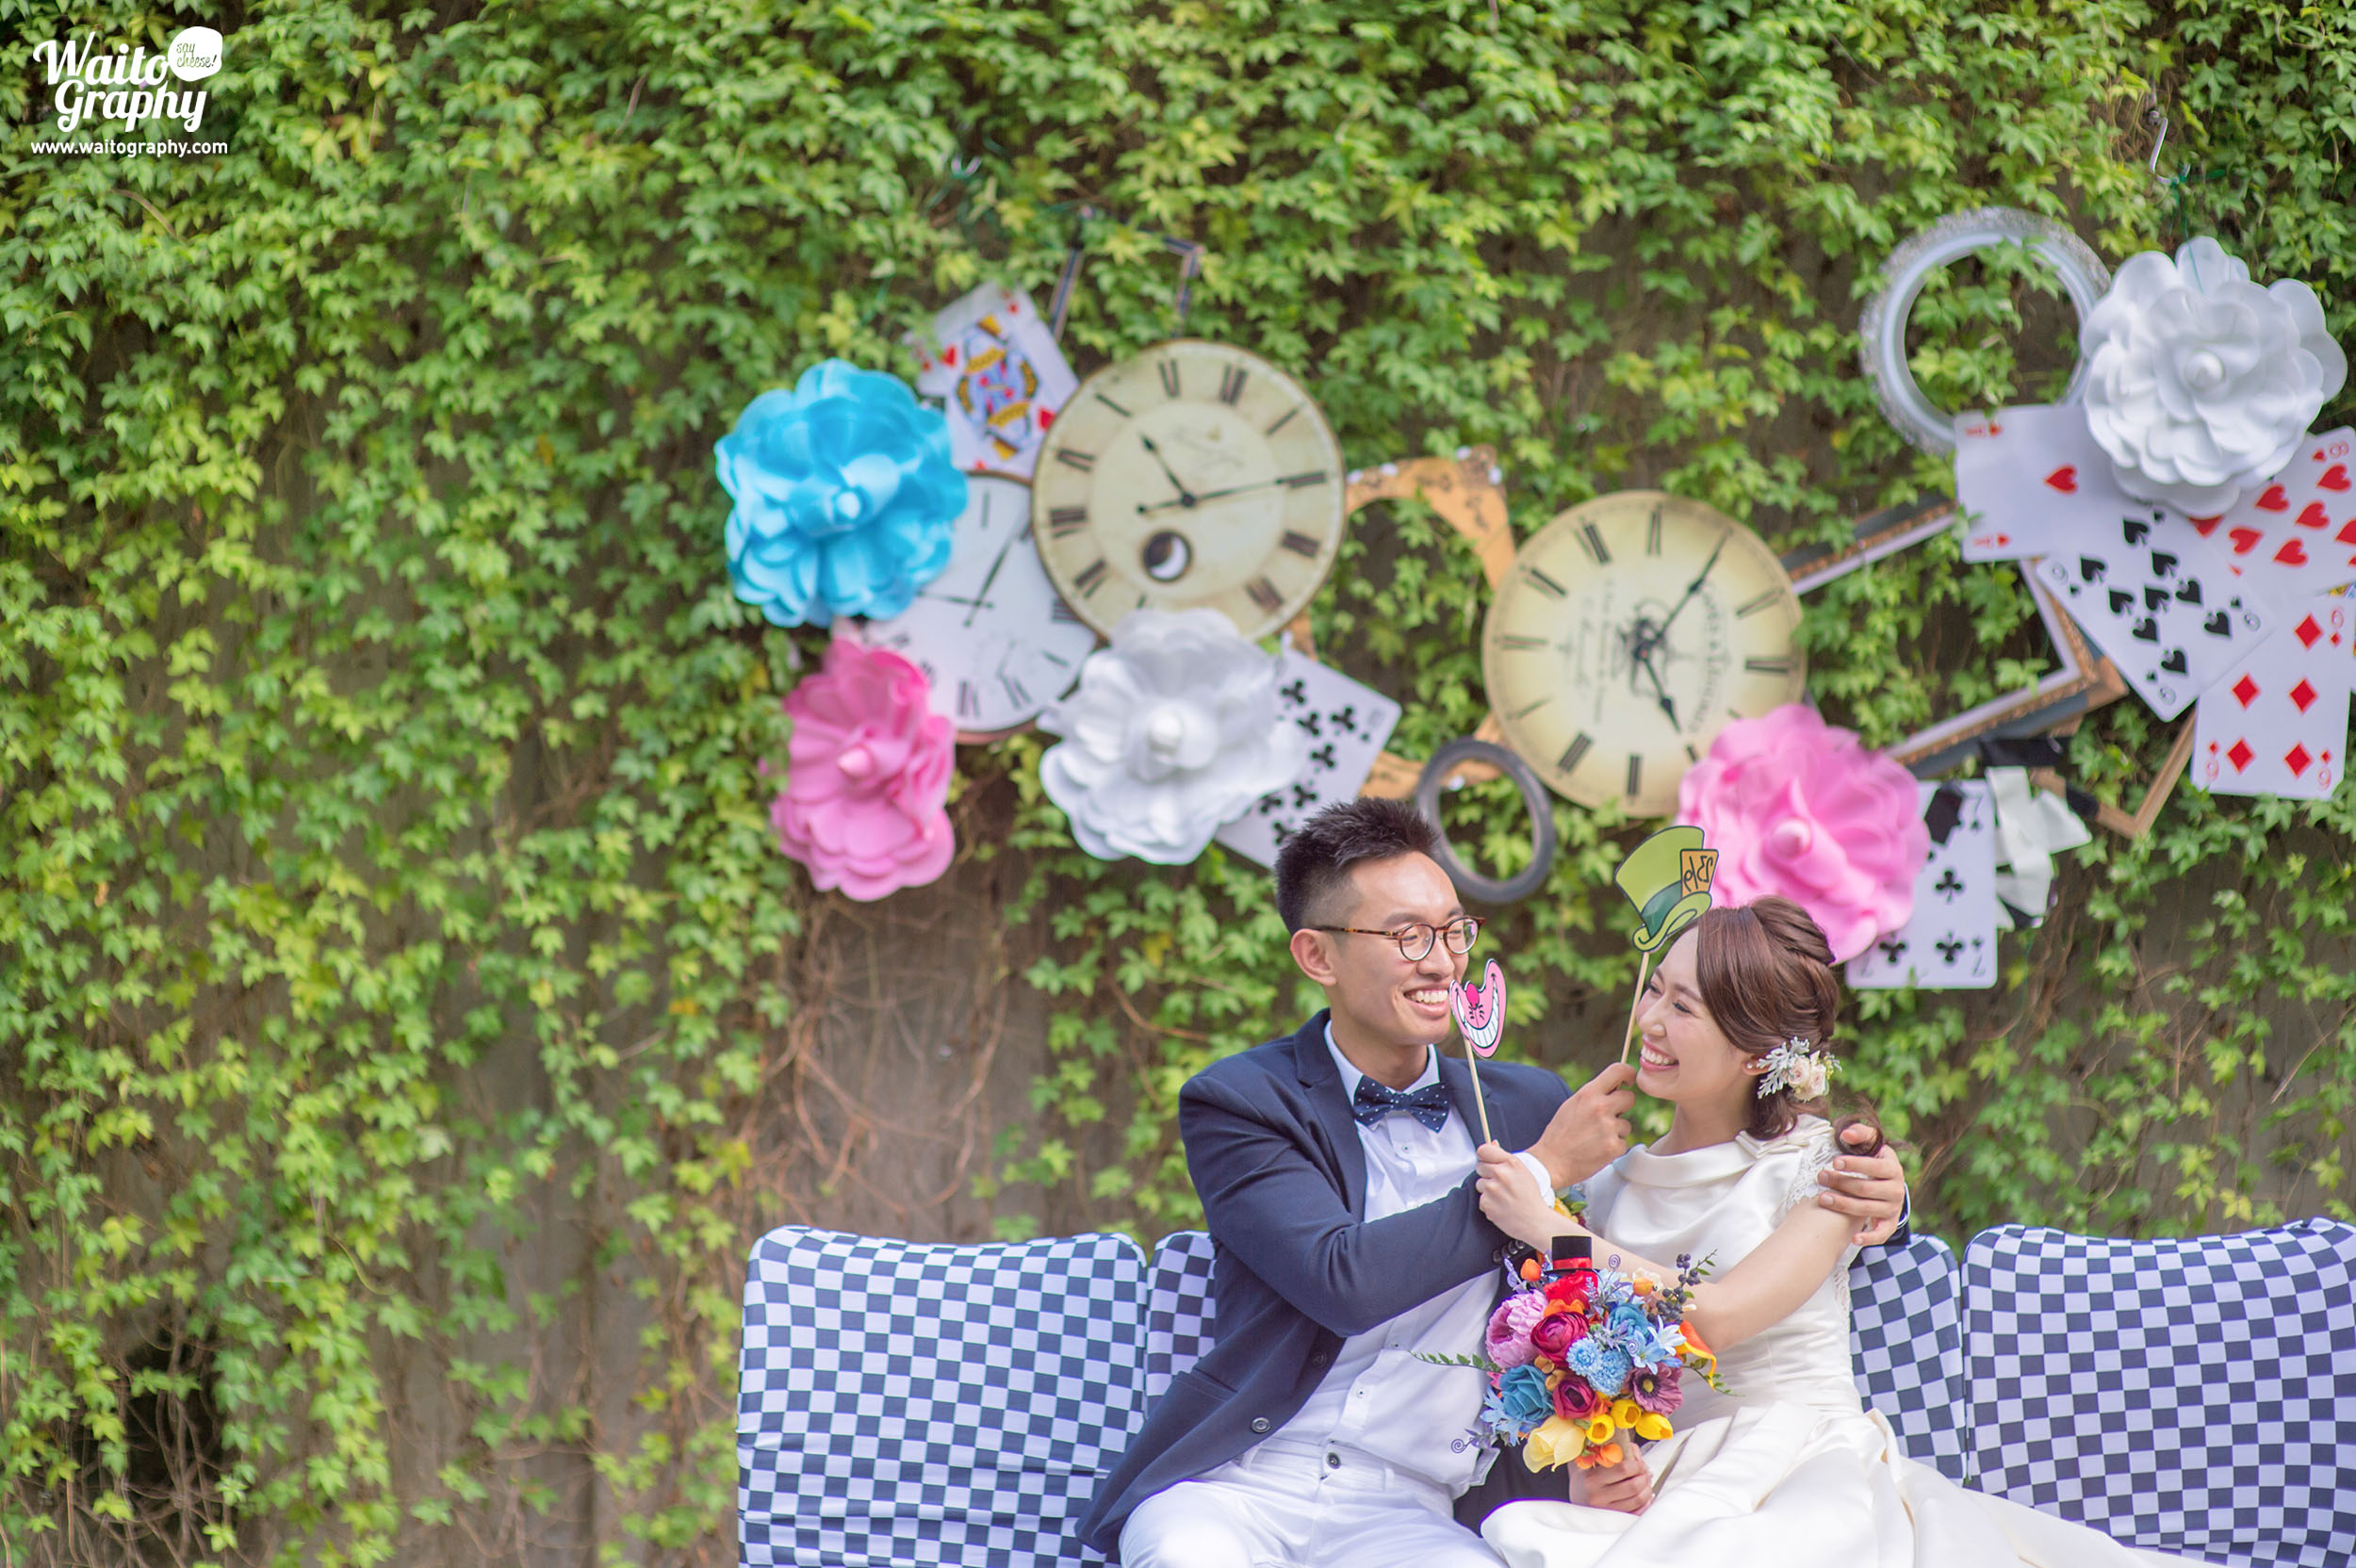 Newly wedded couples delightful moment at Hong Kong outdoor lawn wedding venue Zero Carbon Building captured by best Hong Kong wedding photographer